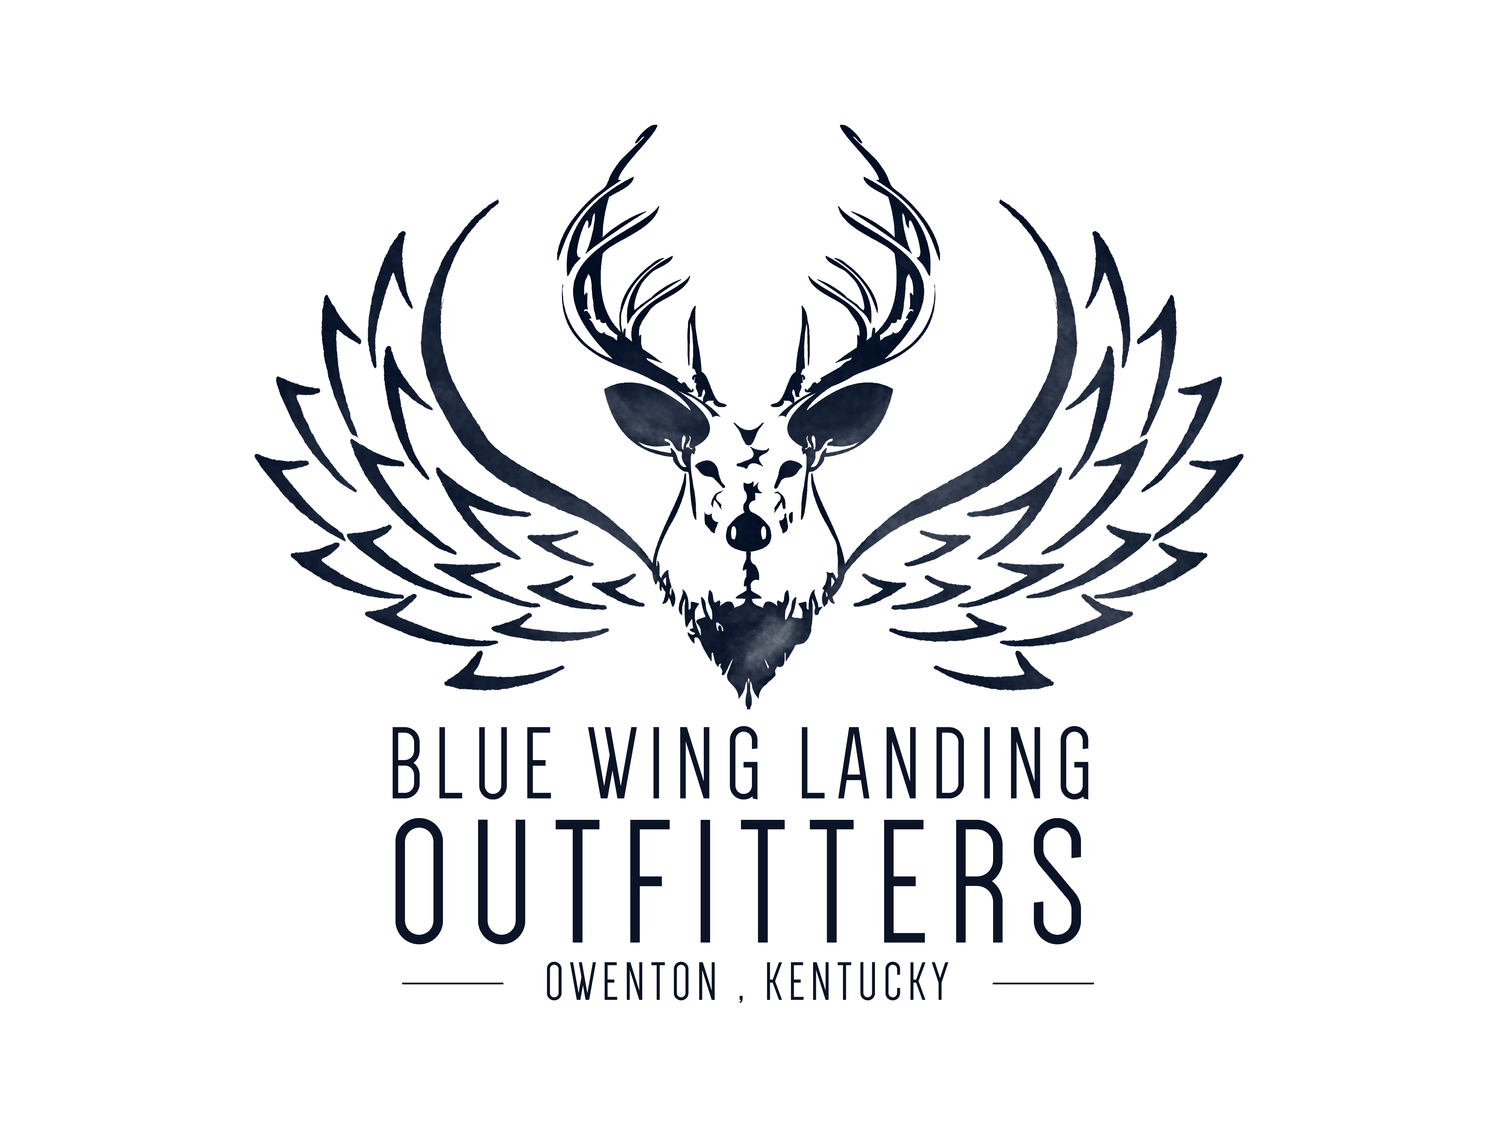 Blue Wing Landing Outfitters